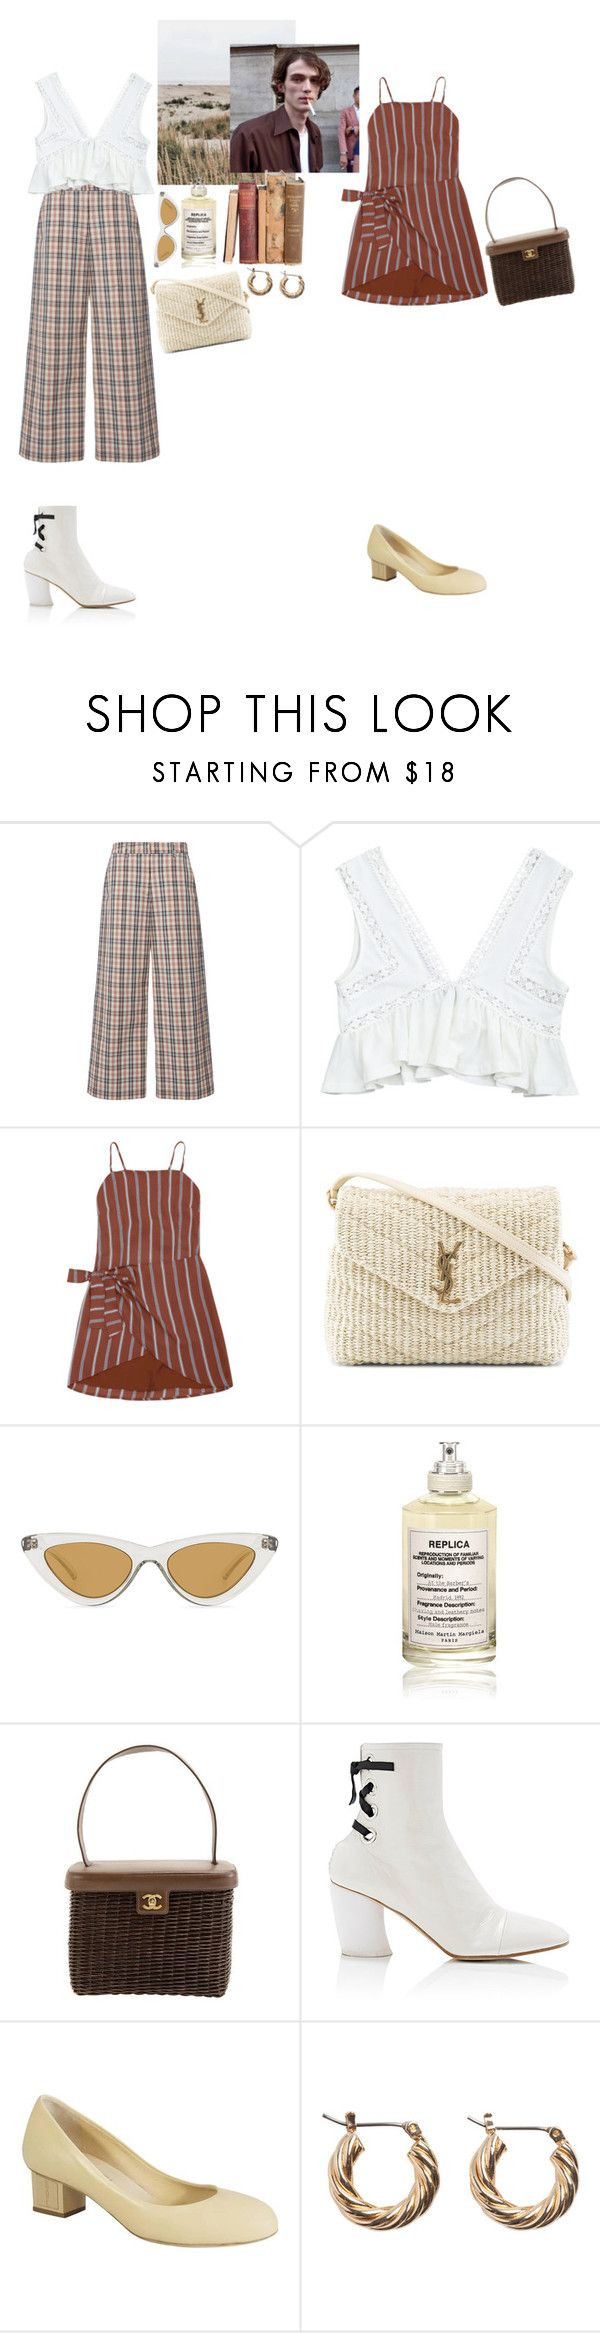 """""""for the time being"""" by rsussher ❤ liked on Polyvore featuring Isa Arfen, Yves Saint Laurent, Le Specs, Maison Margiela, Chanel and Proenza Schouler"""